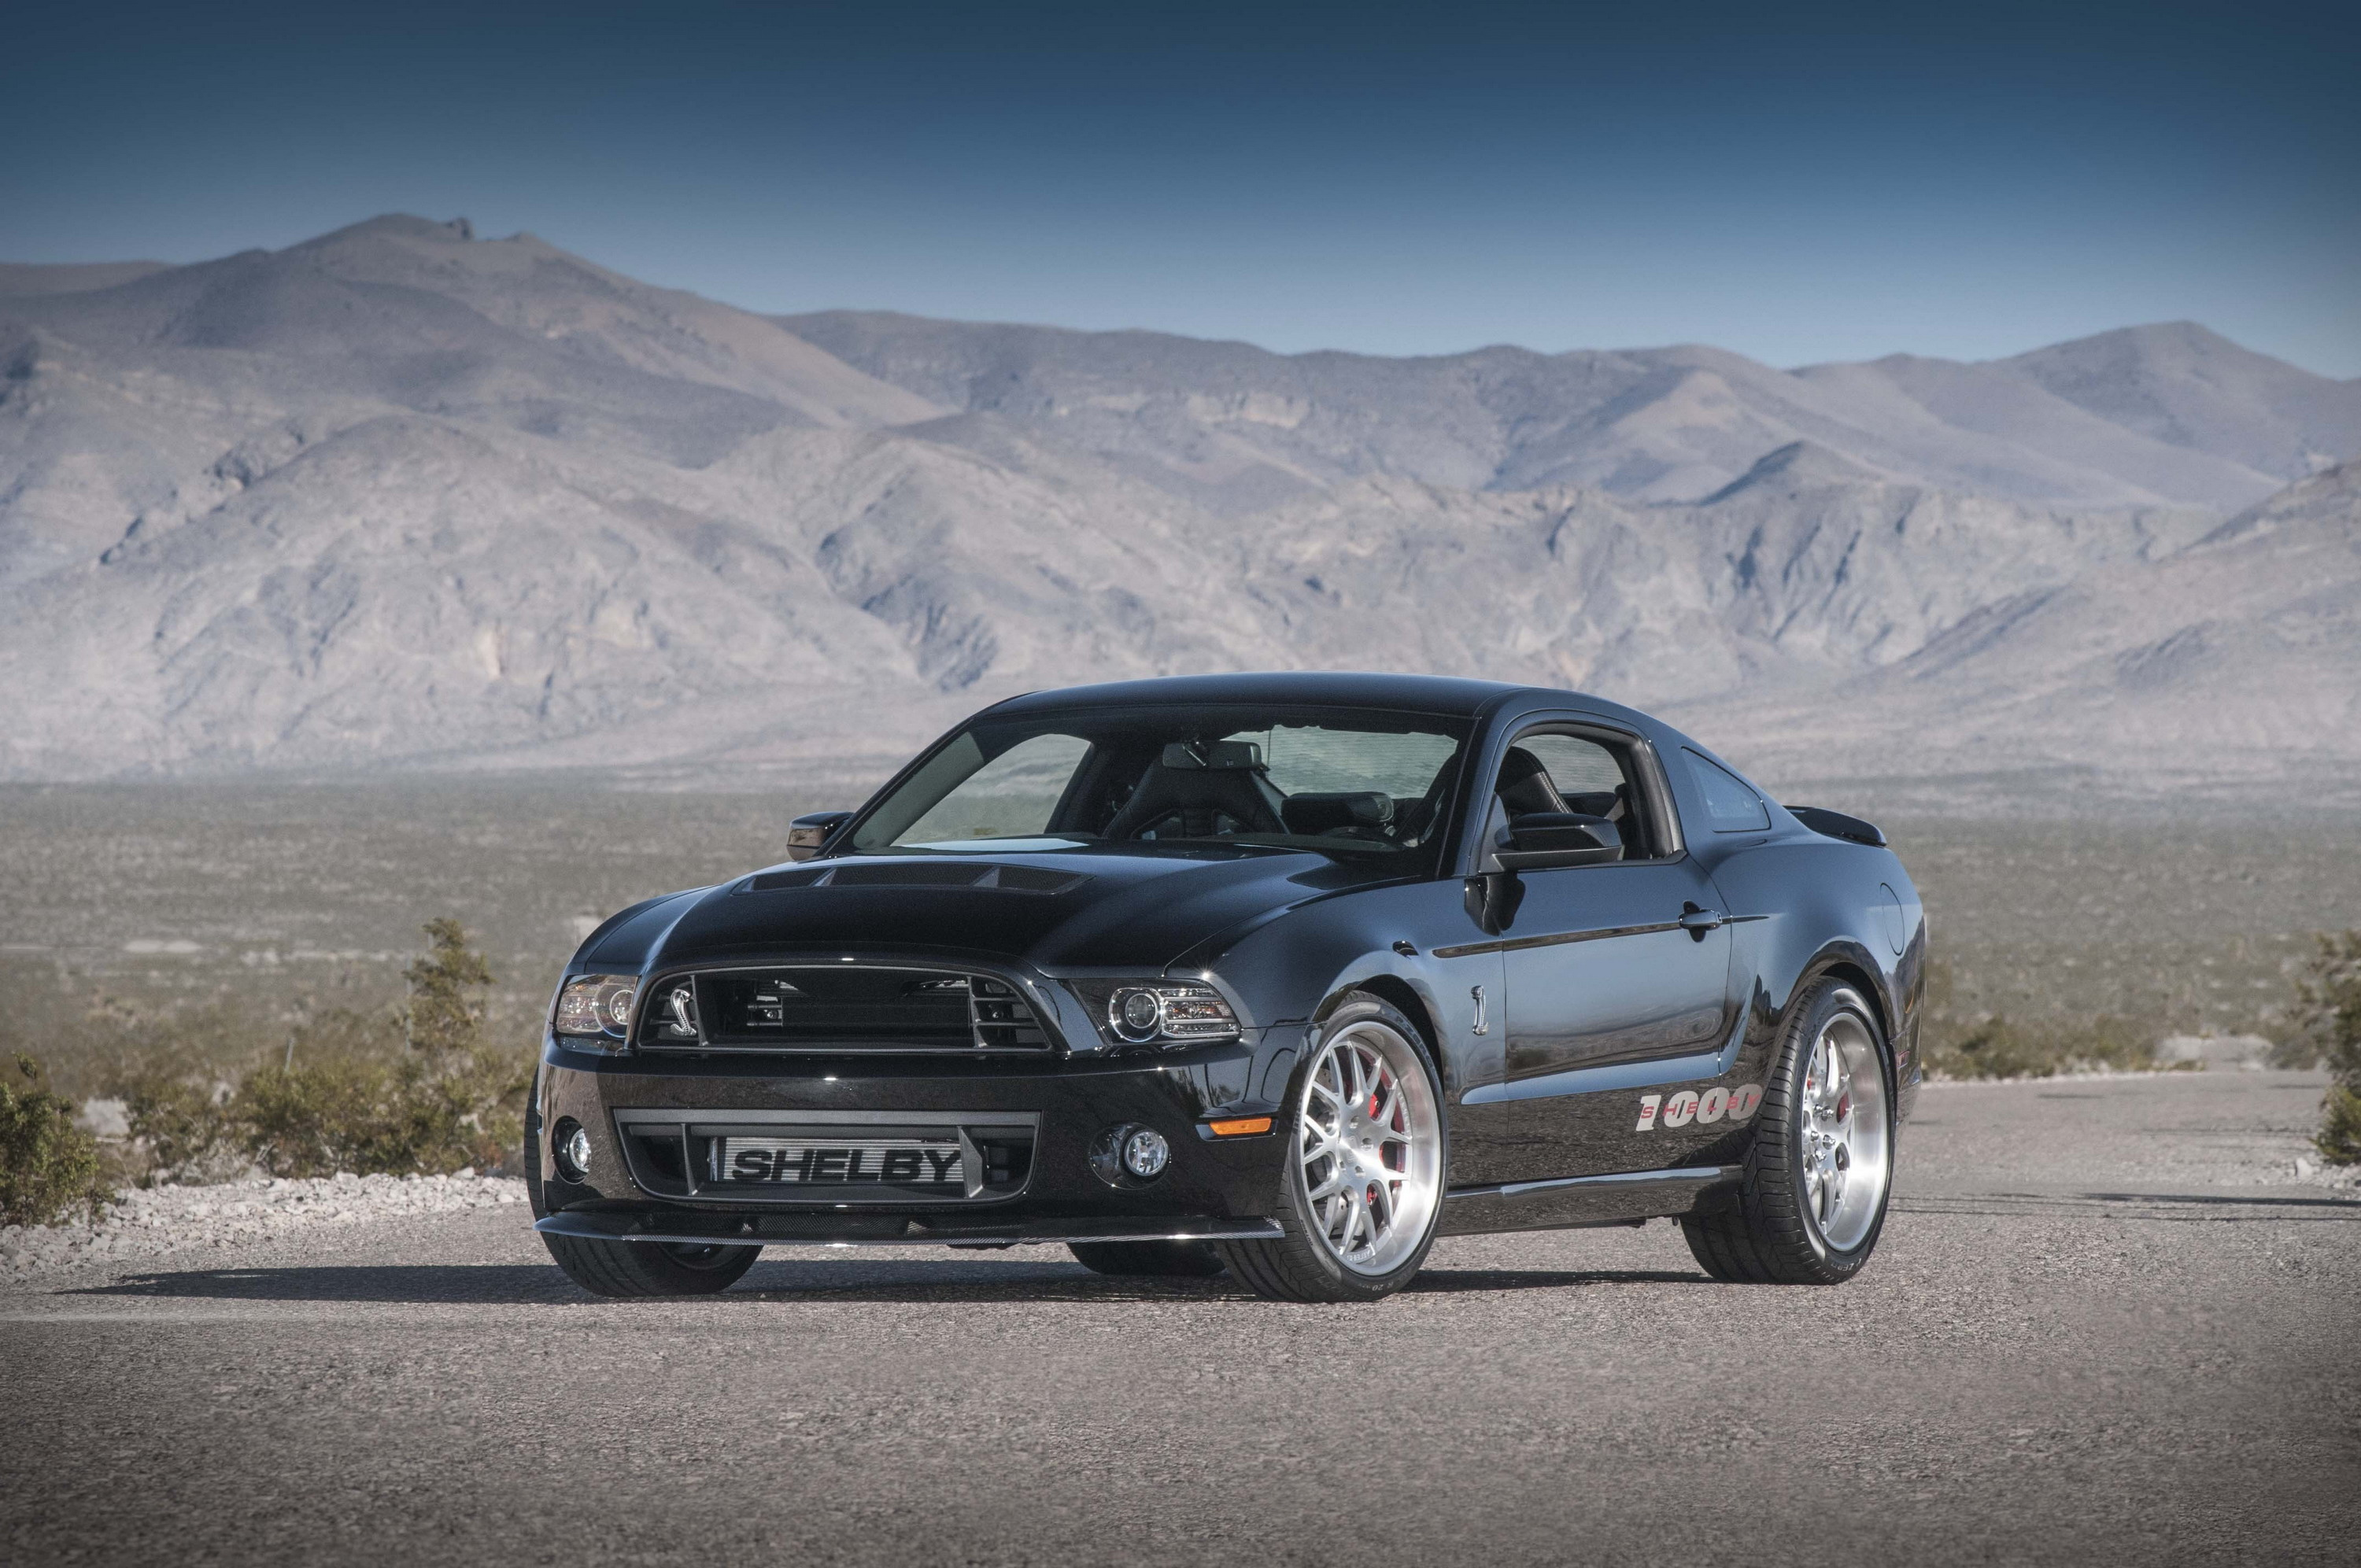 2013 Shelby 1000 S C Top Speed